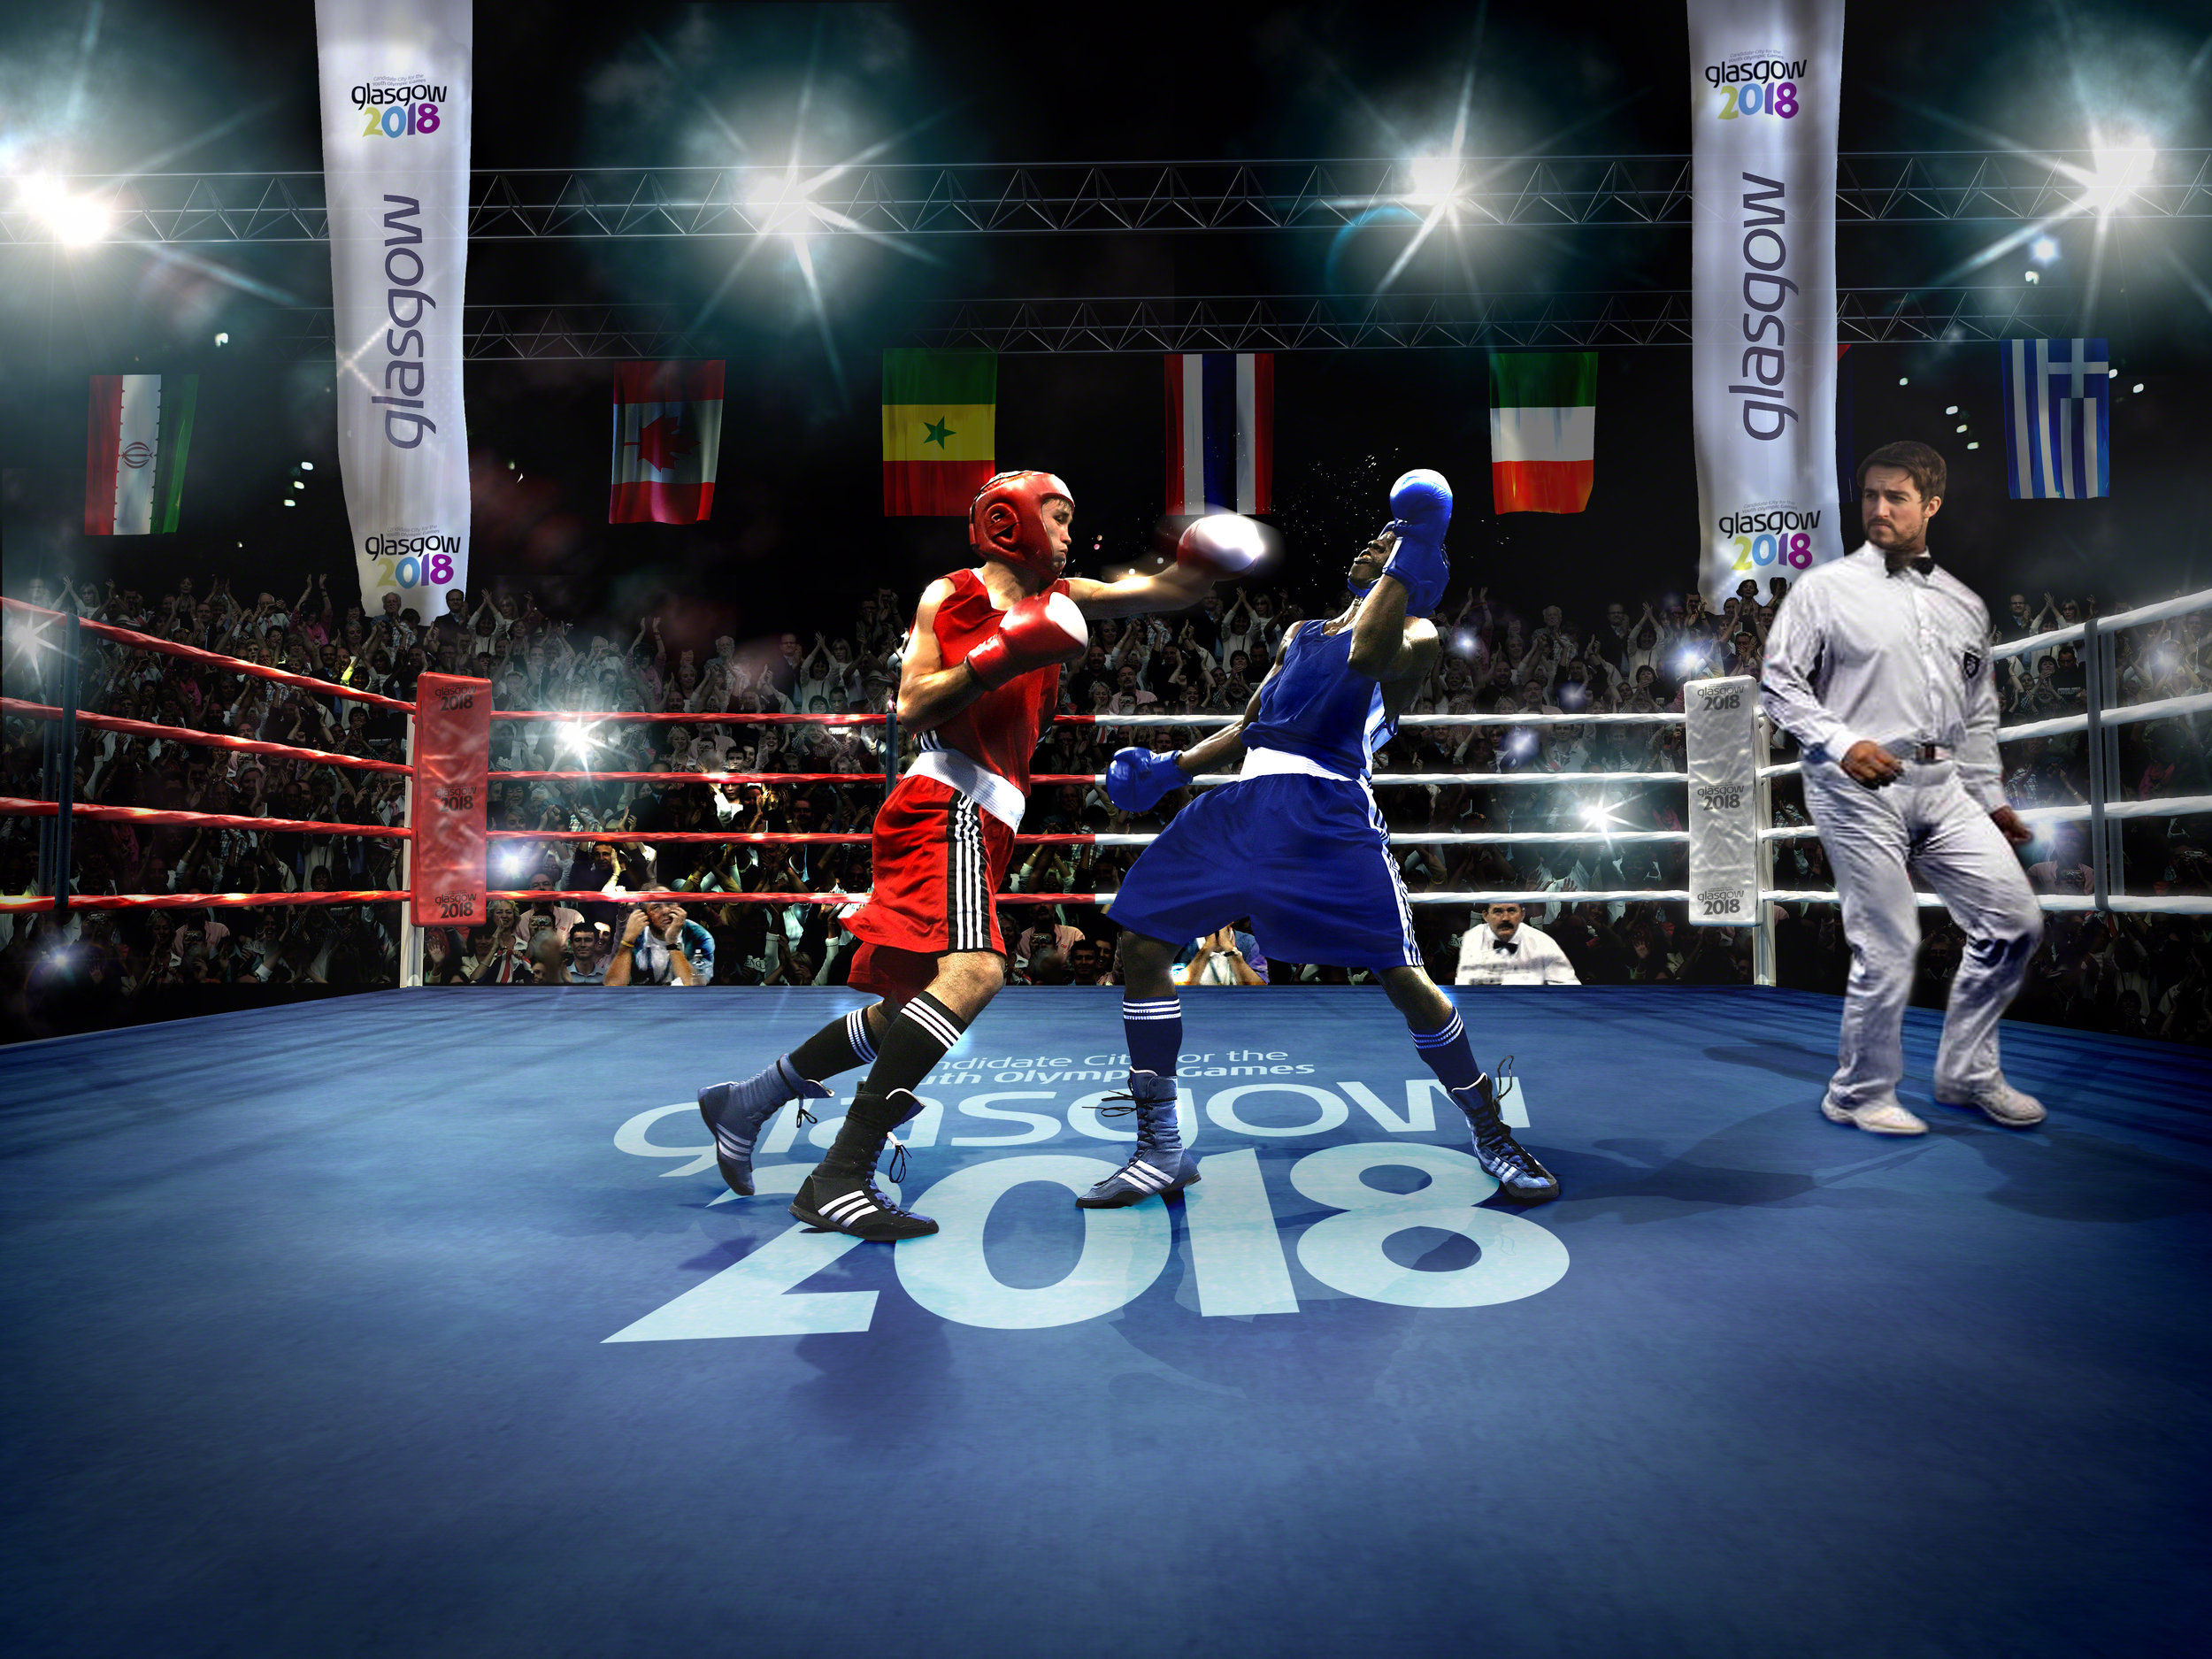 Glasgow 2018 Youth Olympics (2113 2113_Boxing_FINAL).jpg